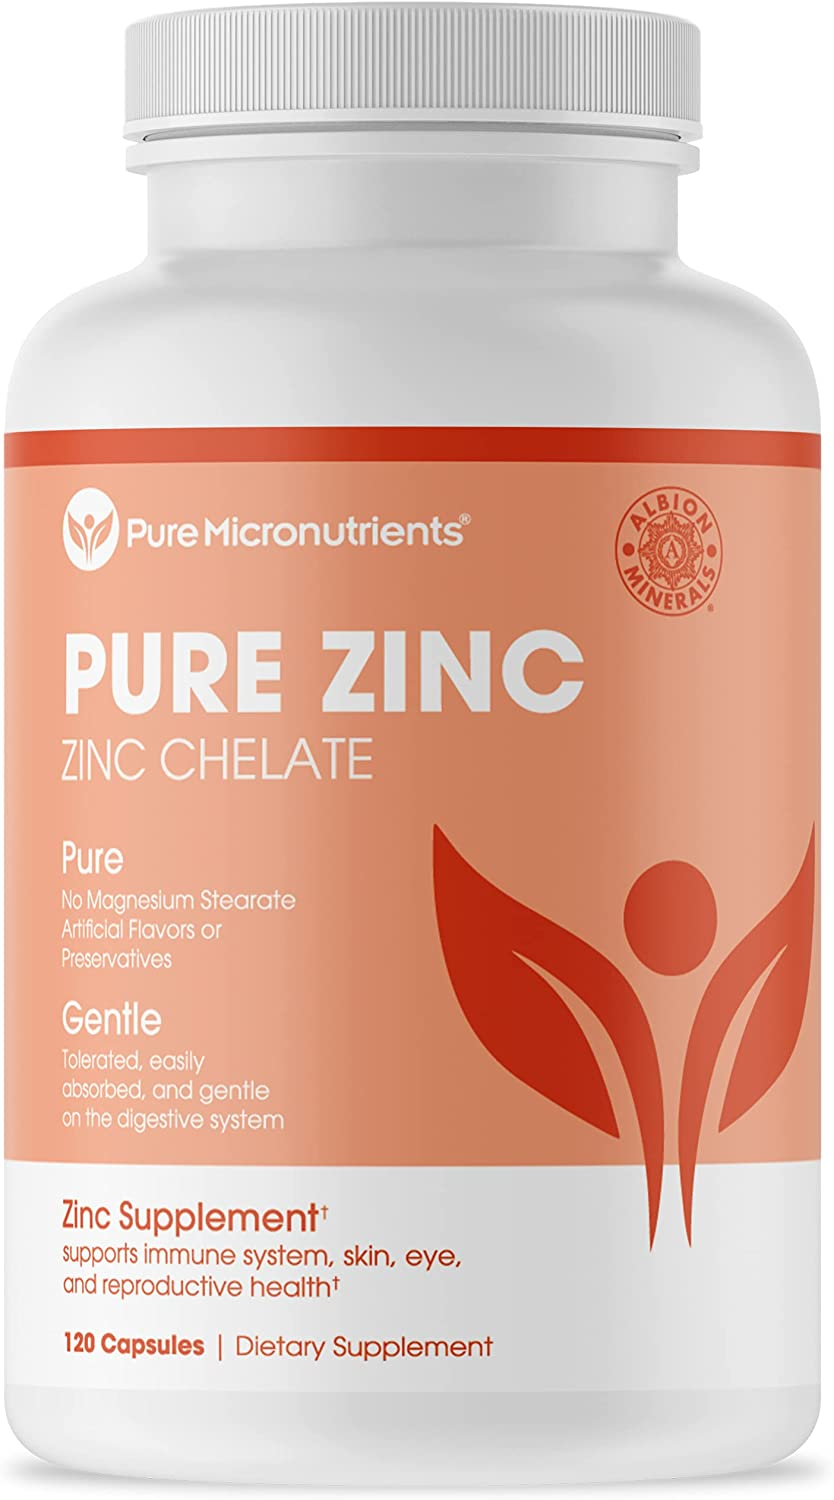 Pure Zinc Supplement, Natural Zinc Glycinate Supplements, (Chelated) 25mg, 120 - Pure Micronutrients: Health & Personal Care